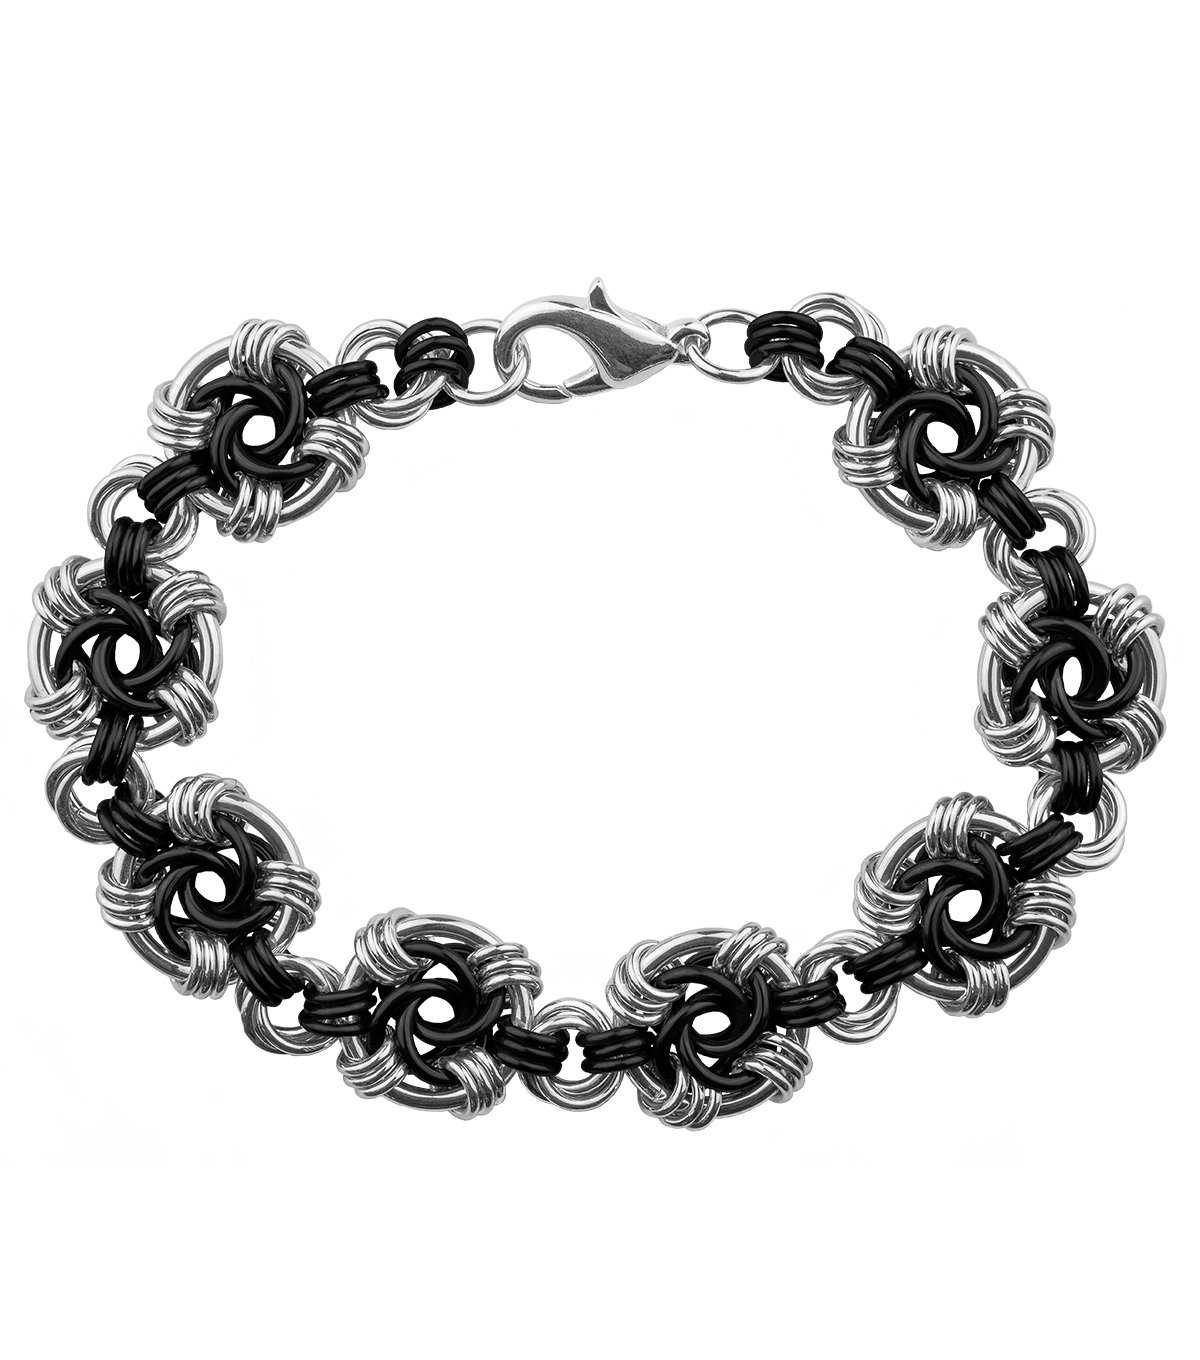 Weave Got Maille Swirls Chainmaille Bracelet Kit-Onyx